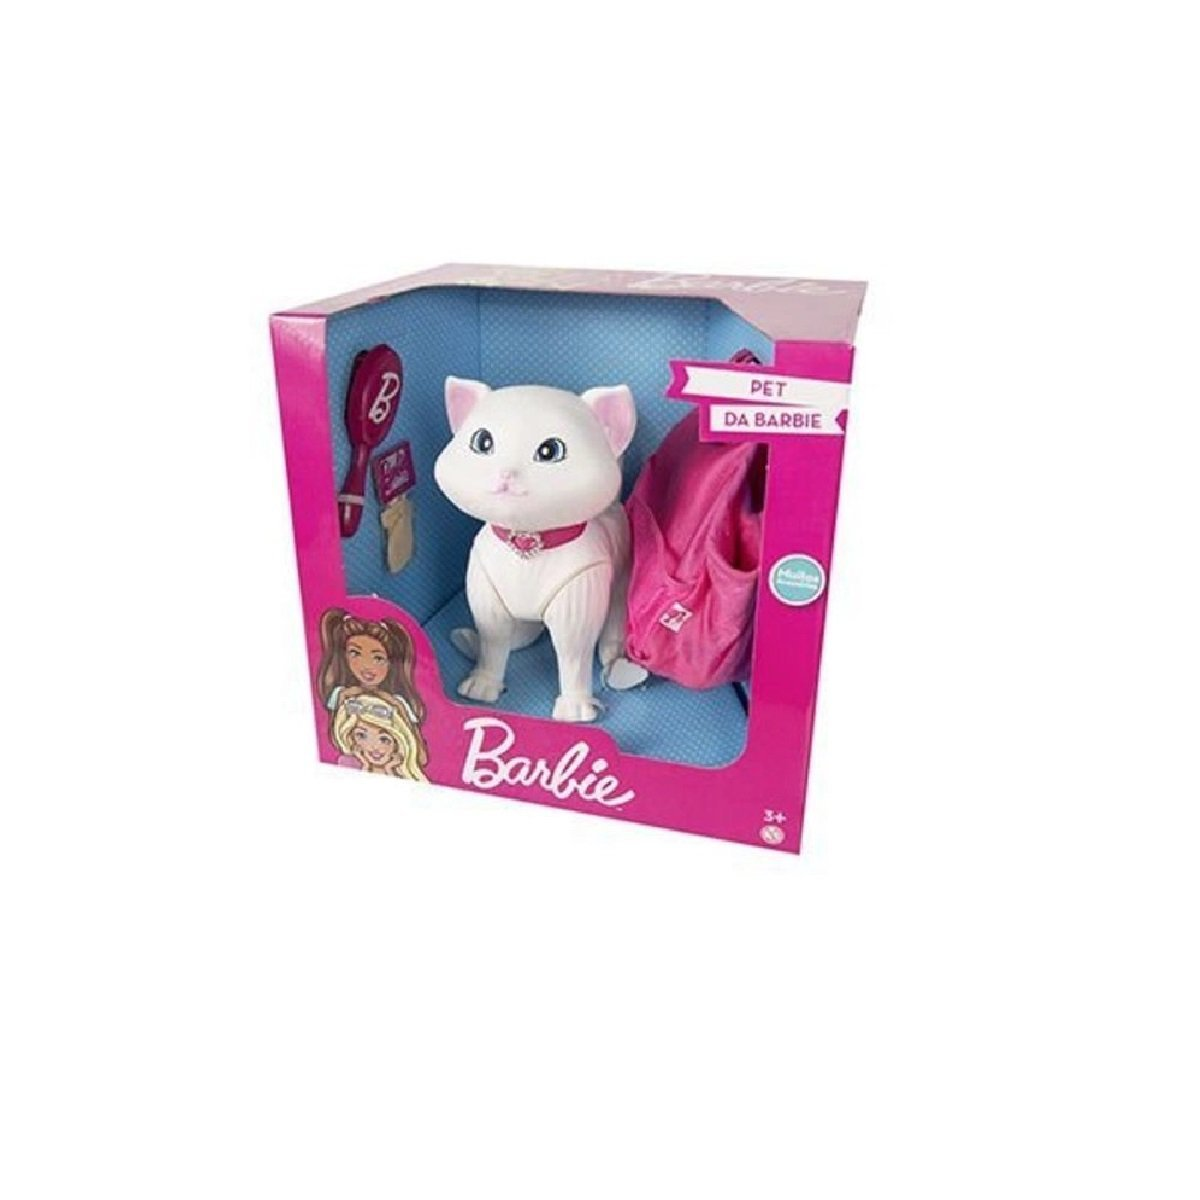 Pet Fashion Da Barbie Blissa Passeio - Pupee 1259